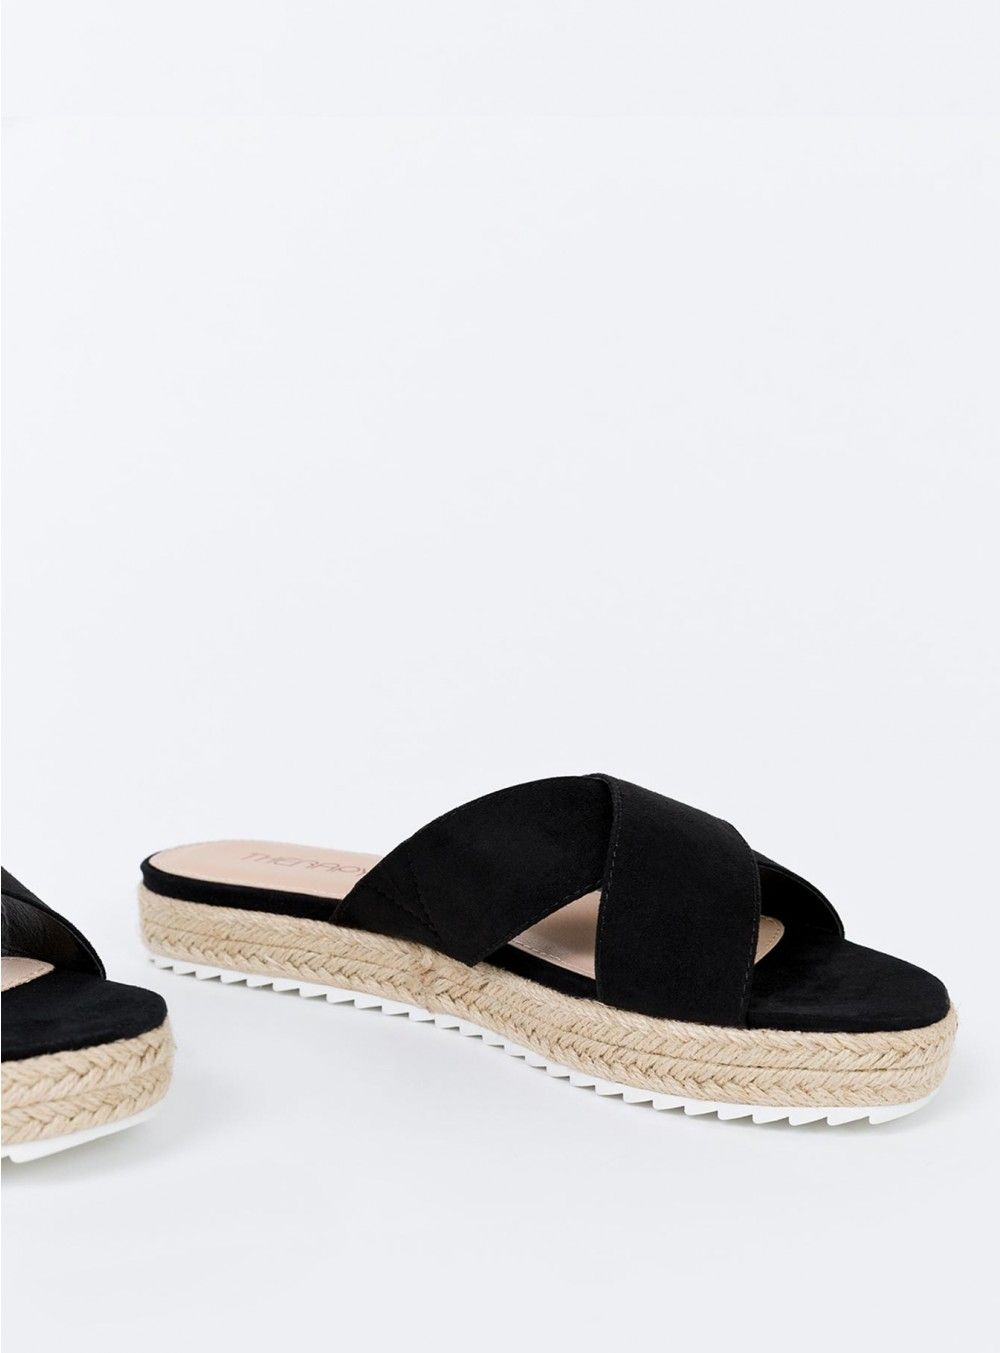 57bd77bb743 Therapy Apras Black Suede - inside view | Shoes | Shoes, Shoes ...